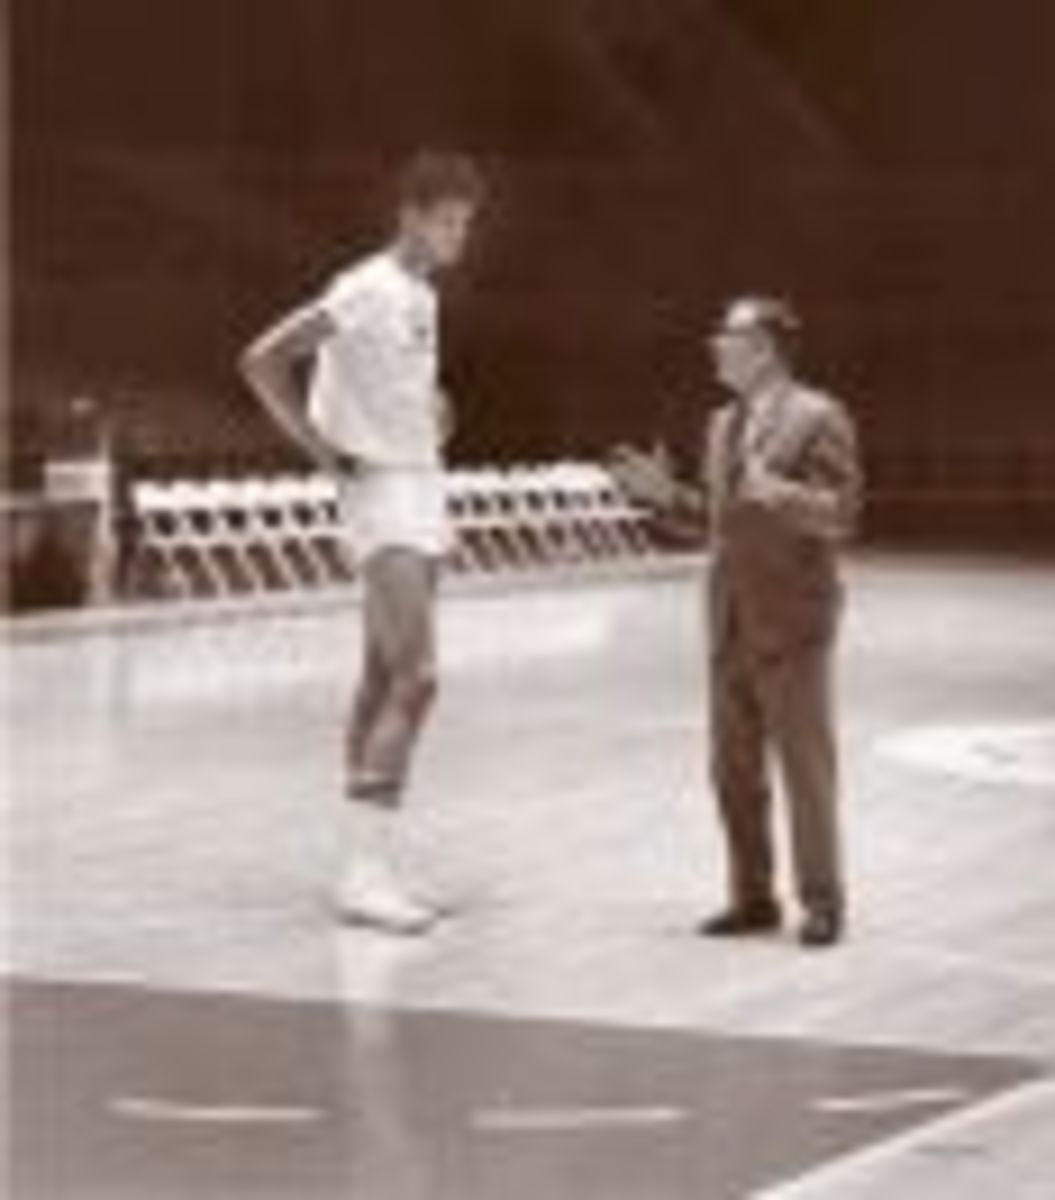 the philosophy behind coaching Coaching philosophy is an important ingredient that all coaches utilize -- whether they know it or not it's important to recognize, embrace, and refine your coaching philosophy it will guide you, keep you on the right track, give your team an identity, and make you a better coach.